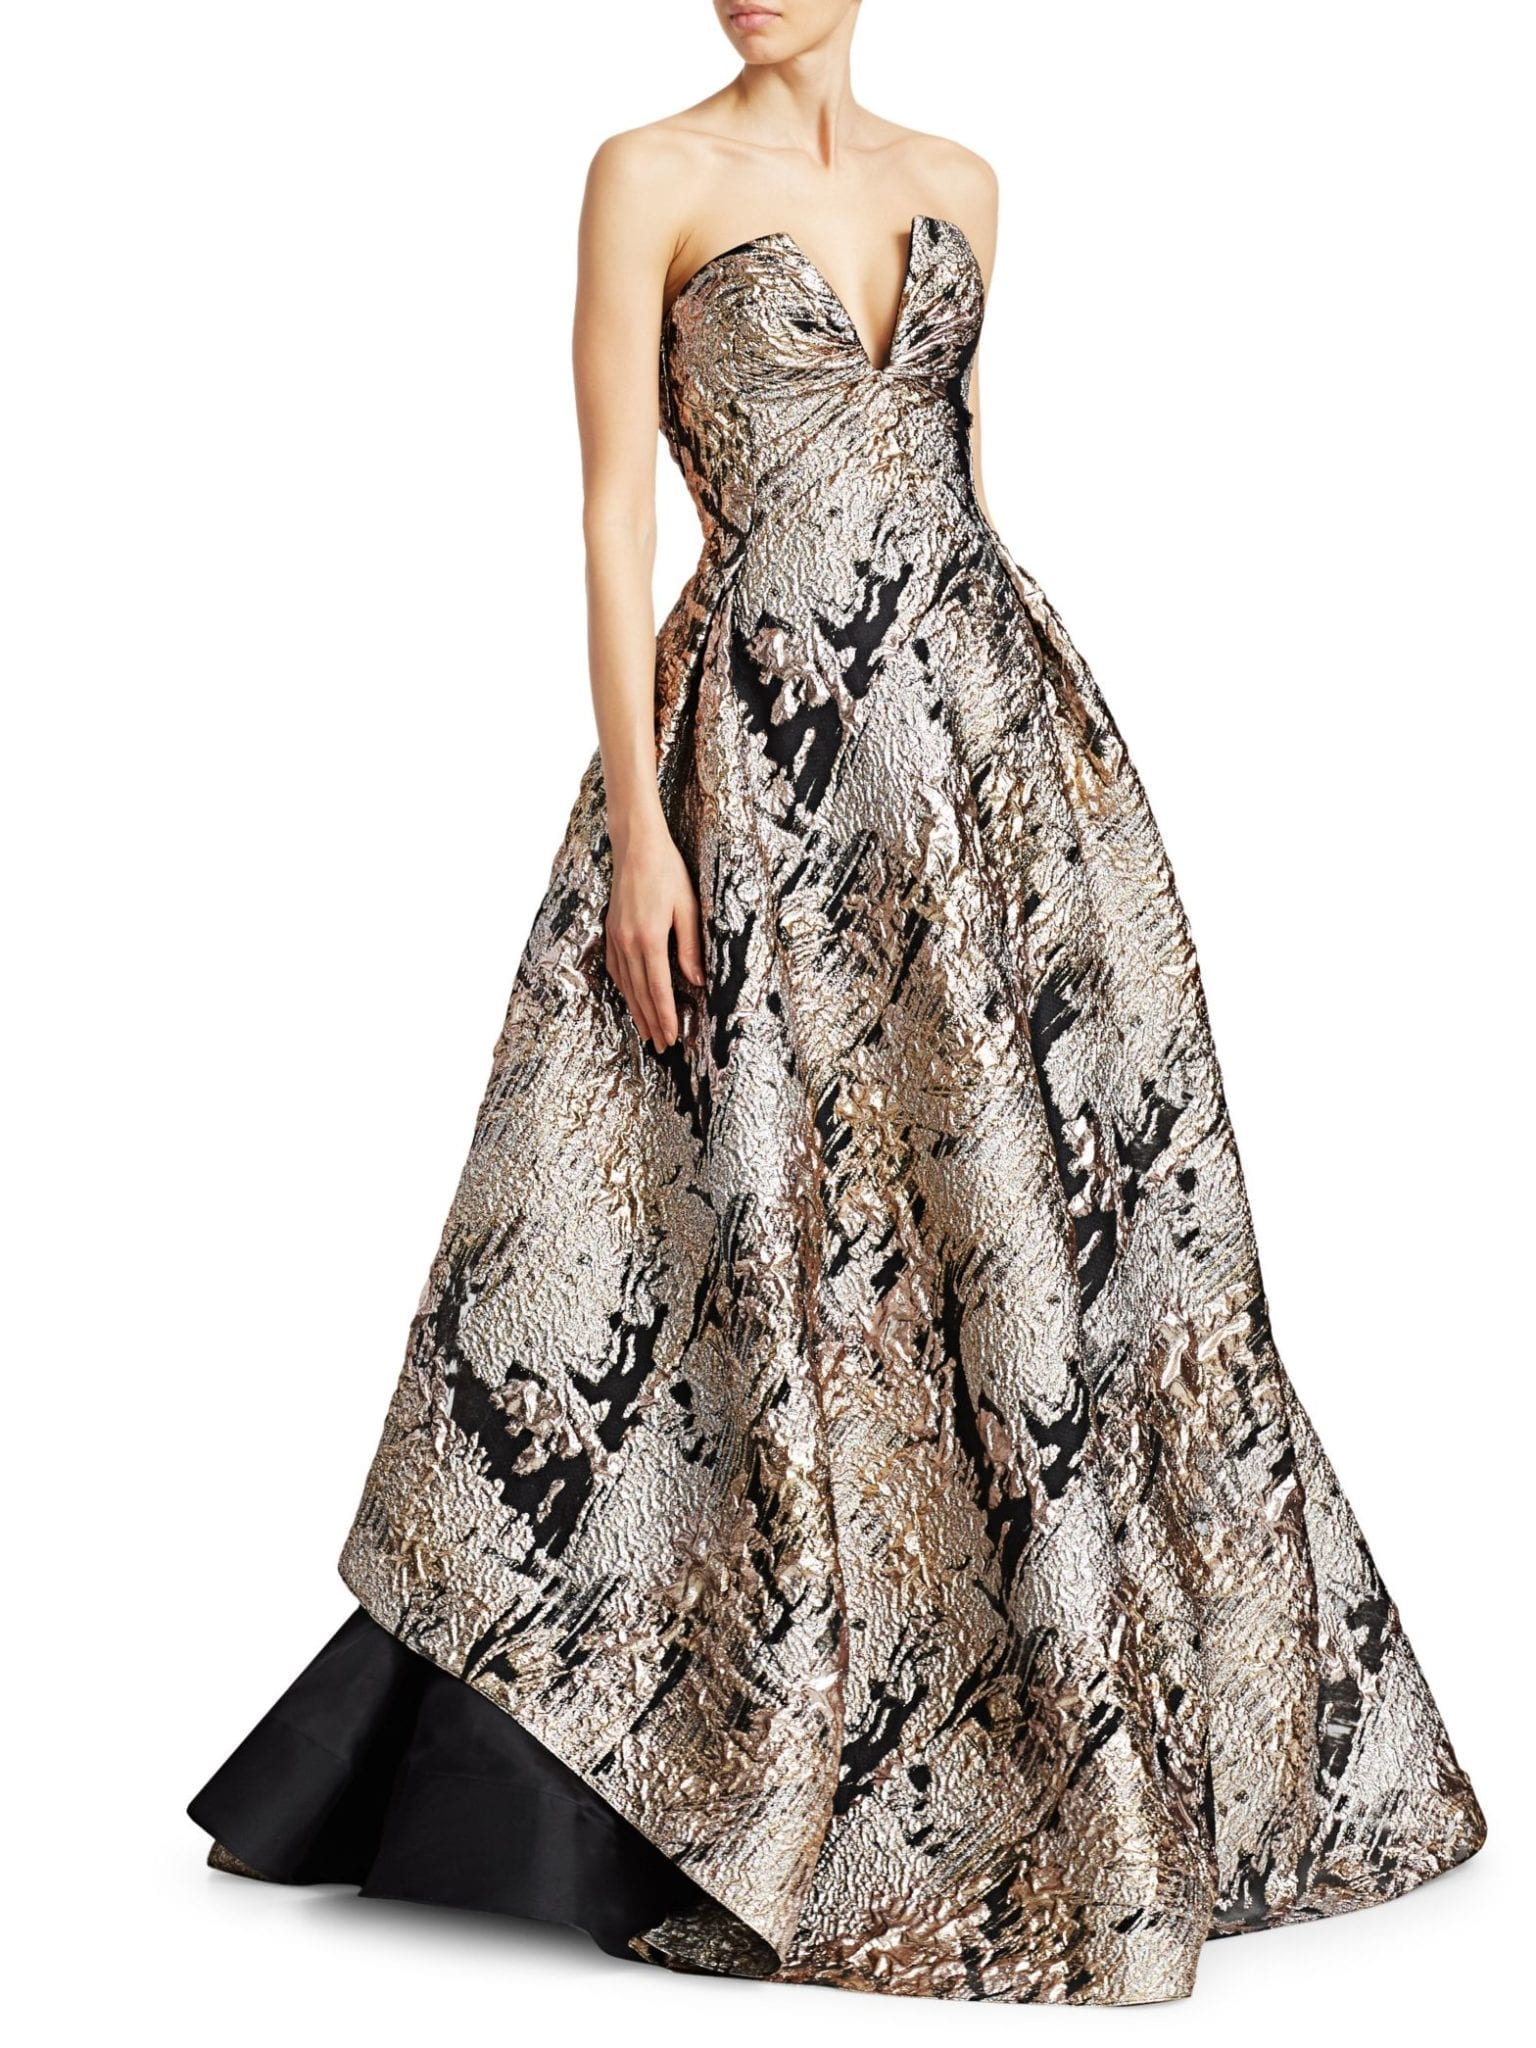 RUBIN SINGER Strapless Brocade Metallic Gown